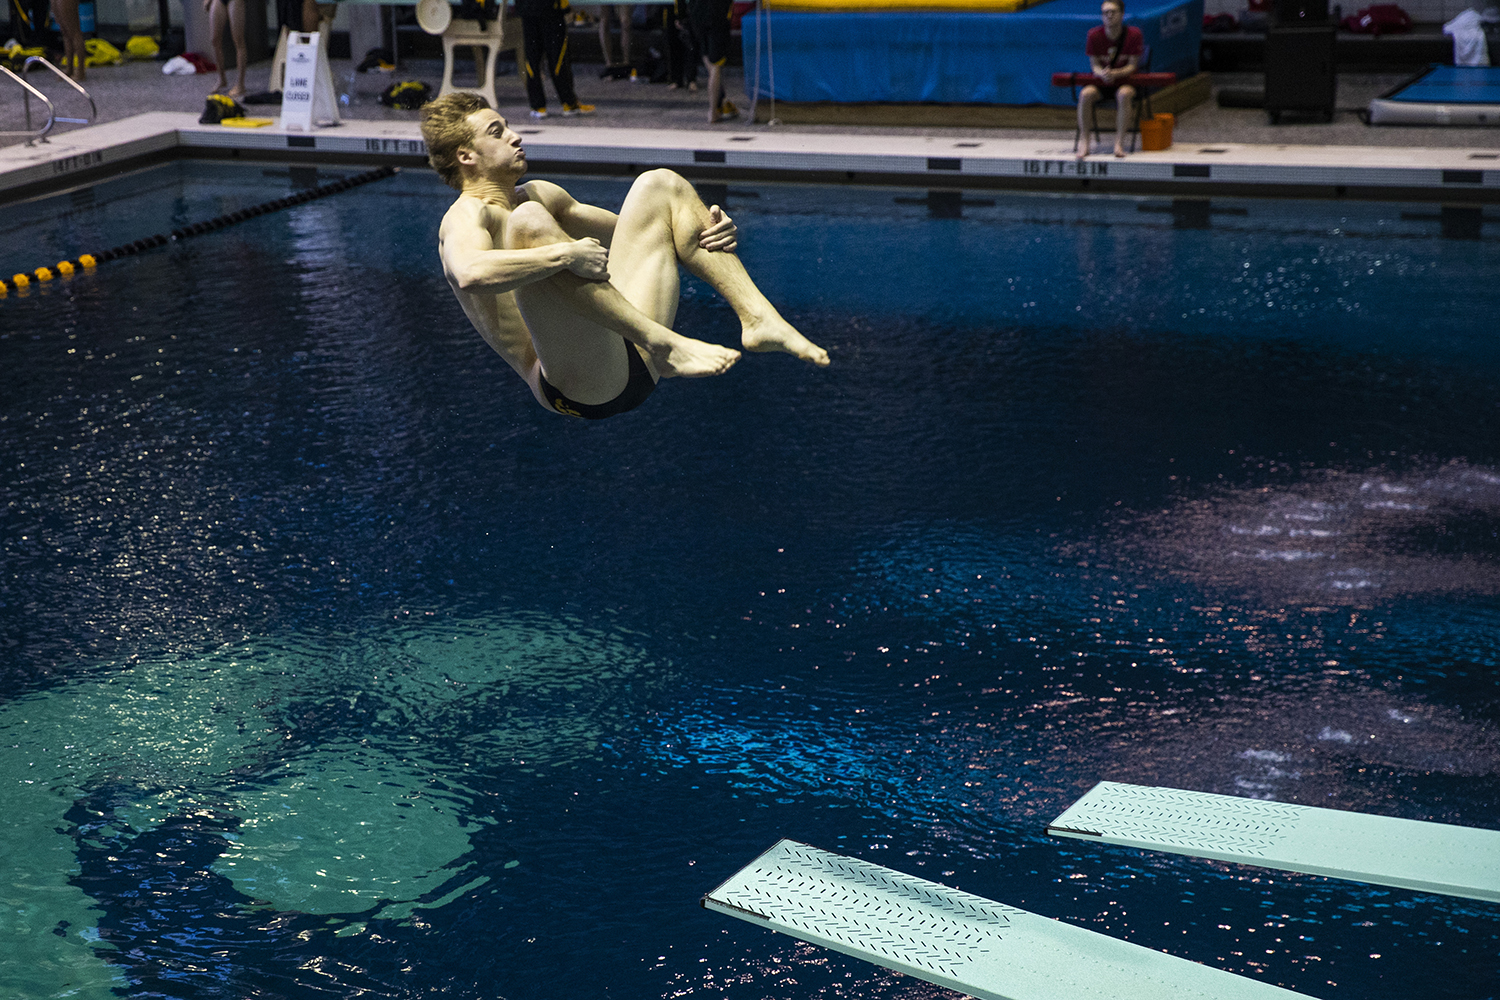 Iowa diver Will Brenner flips in the air during the Northwestern/Wisconsin swim meet at the Campus Recreation and Wellness Center on Saturday, January 19, 2019. The men's swimming and diving team defeated the Badgers, 164-136, and the Wildcats, 194-106. The women's swimming and diving team fell to the Badgers, 191-109, and the Wildcats, 178-122.